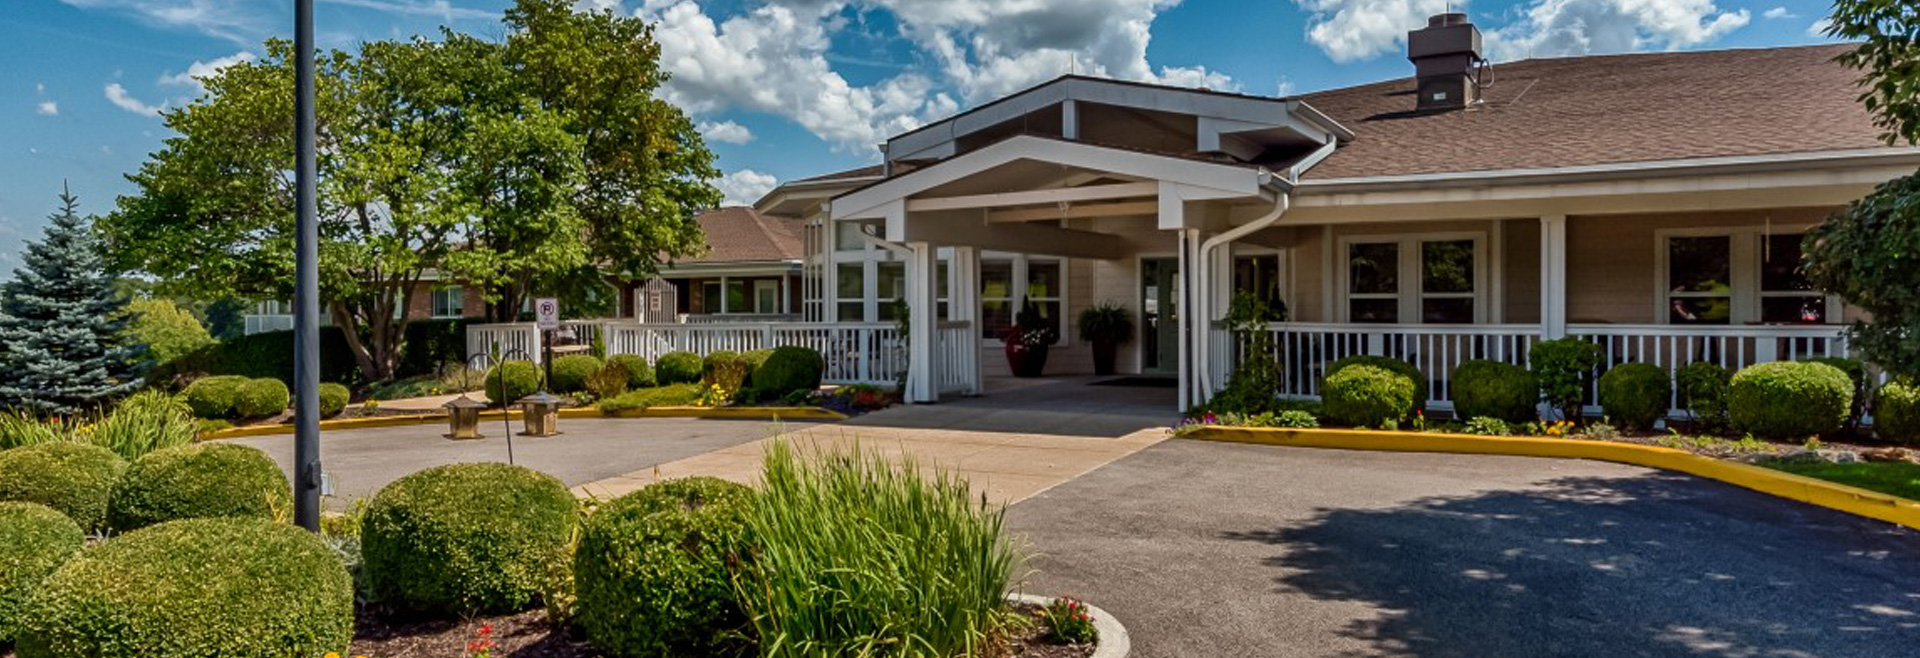 Autumn View Gardens Assisted Living and Memory Care Ellisville